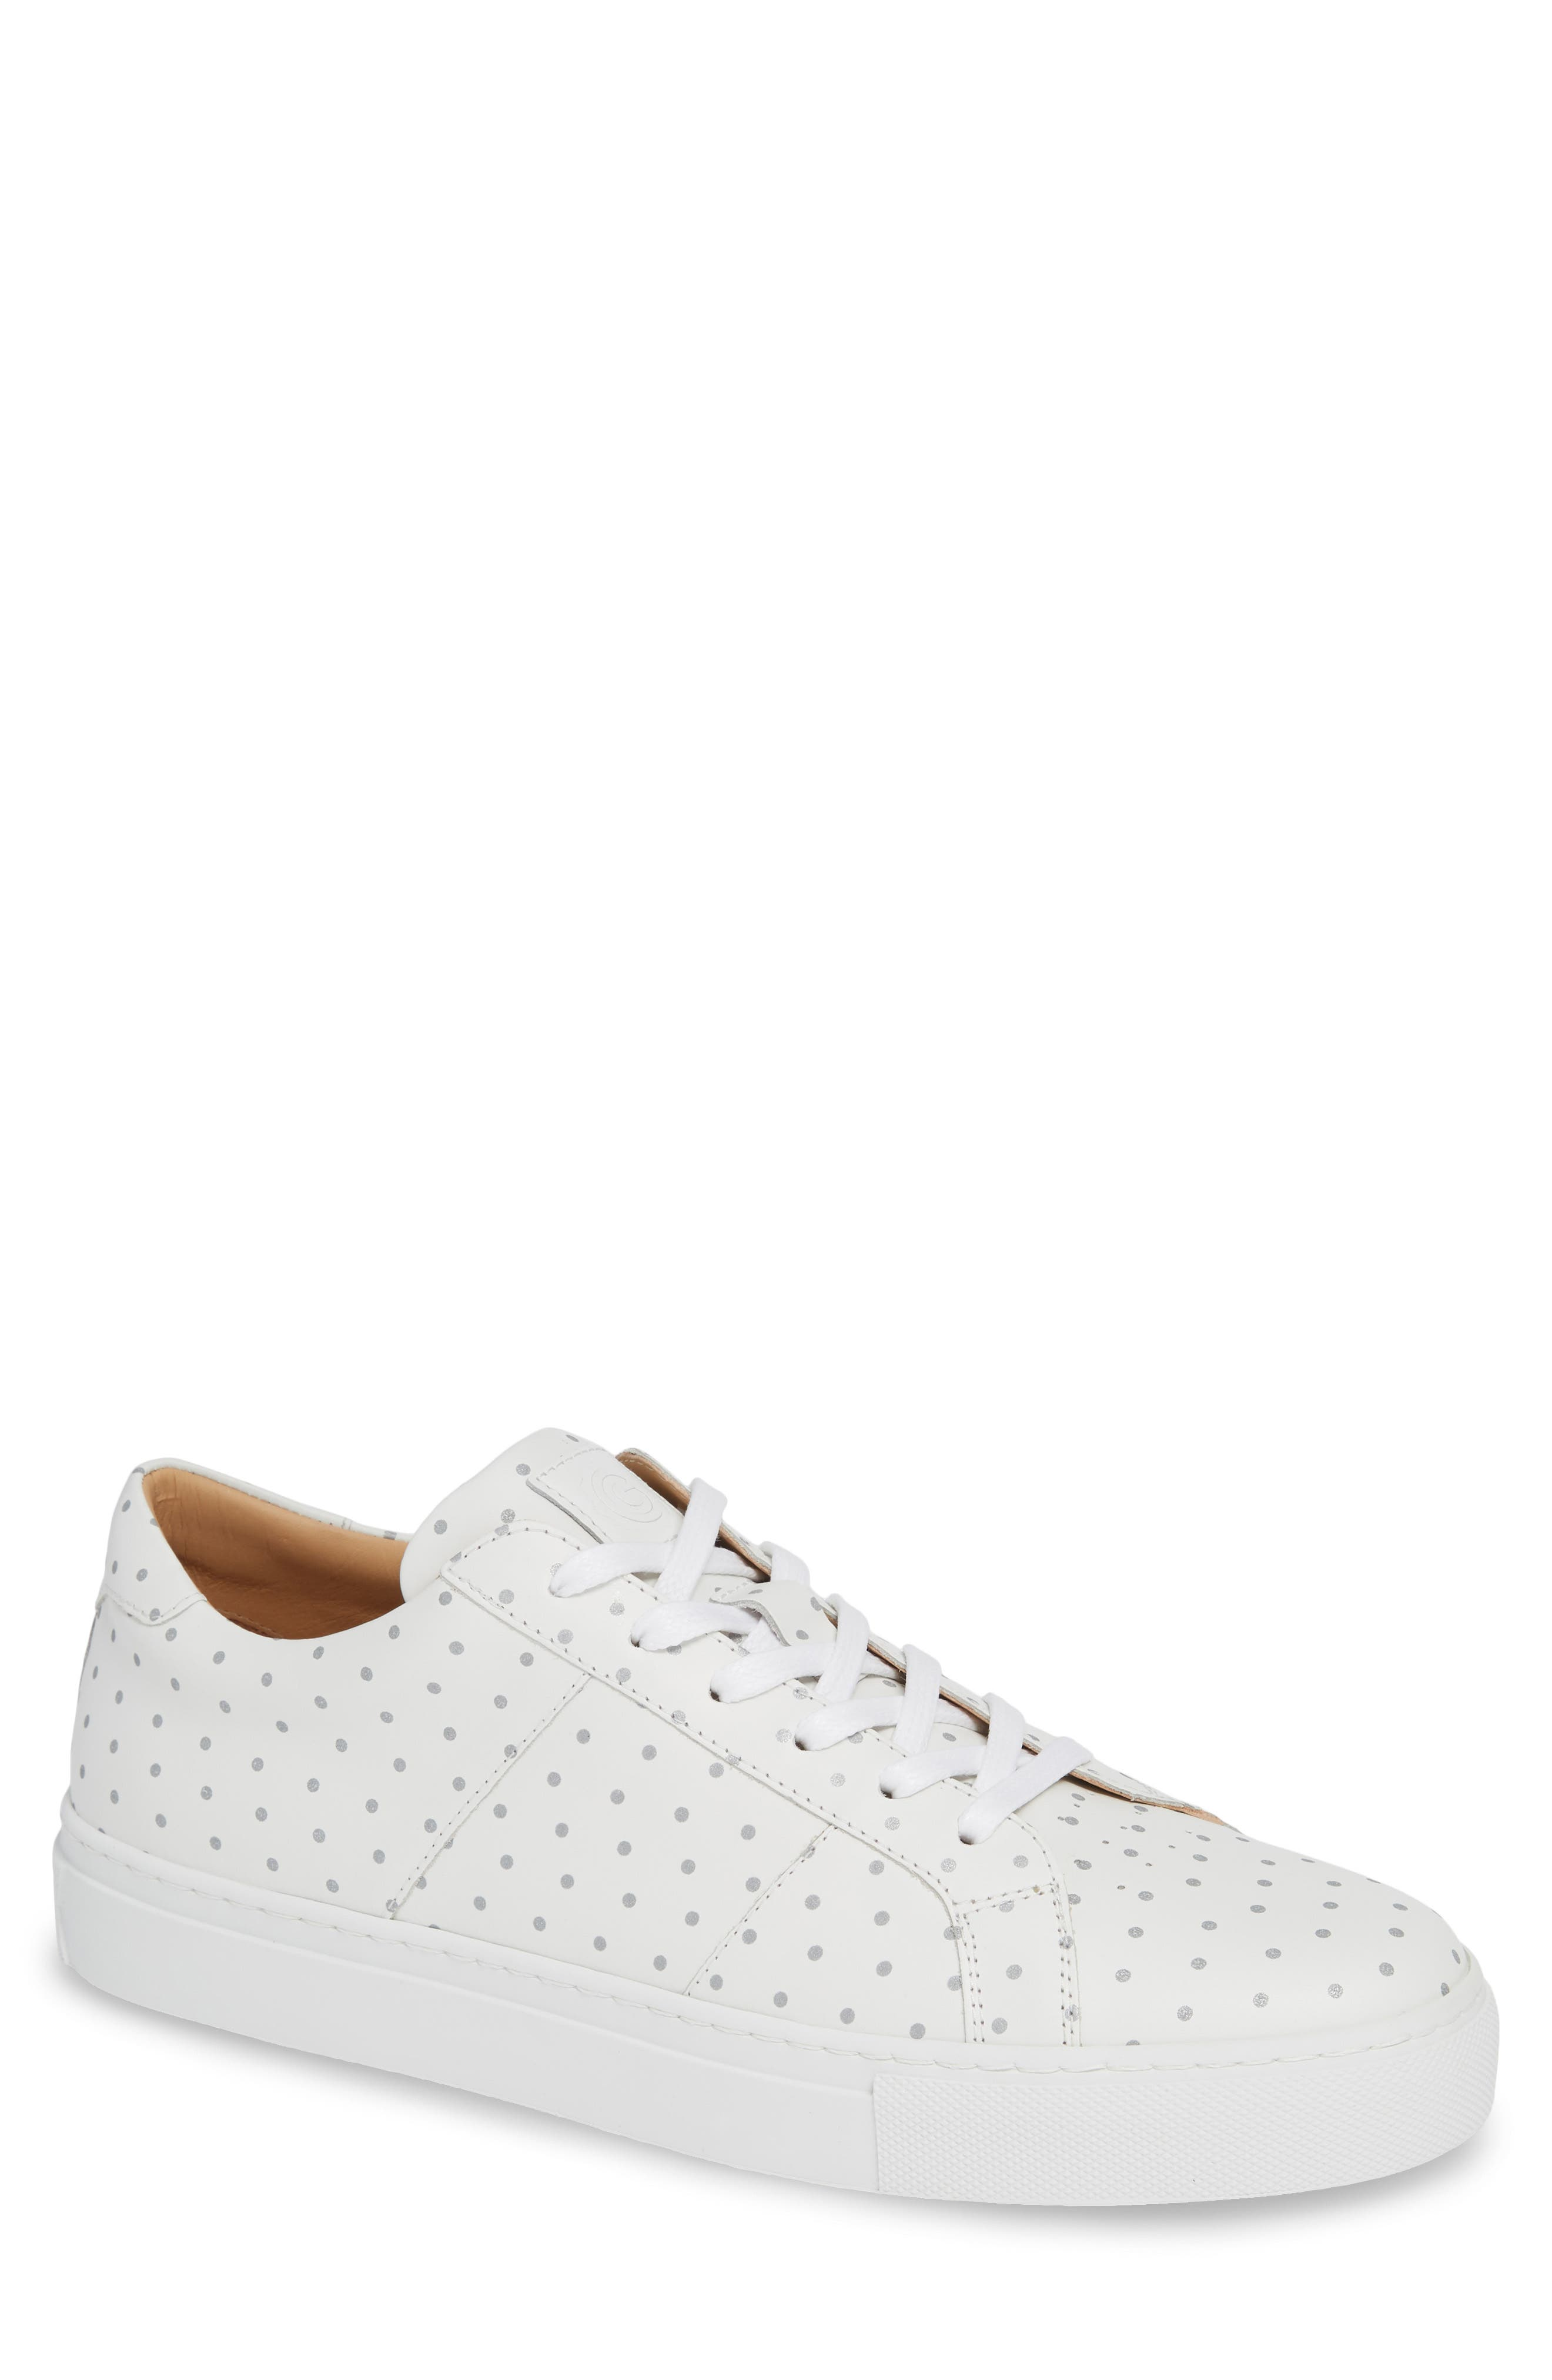 GREATS Royale Dots Low Top Sneaker in White W/ 3M Dots